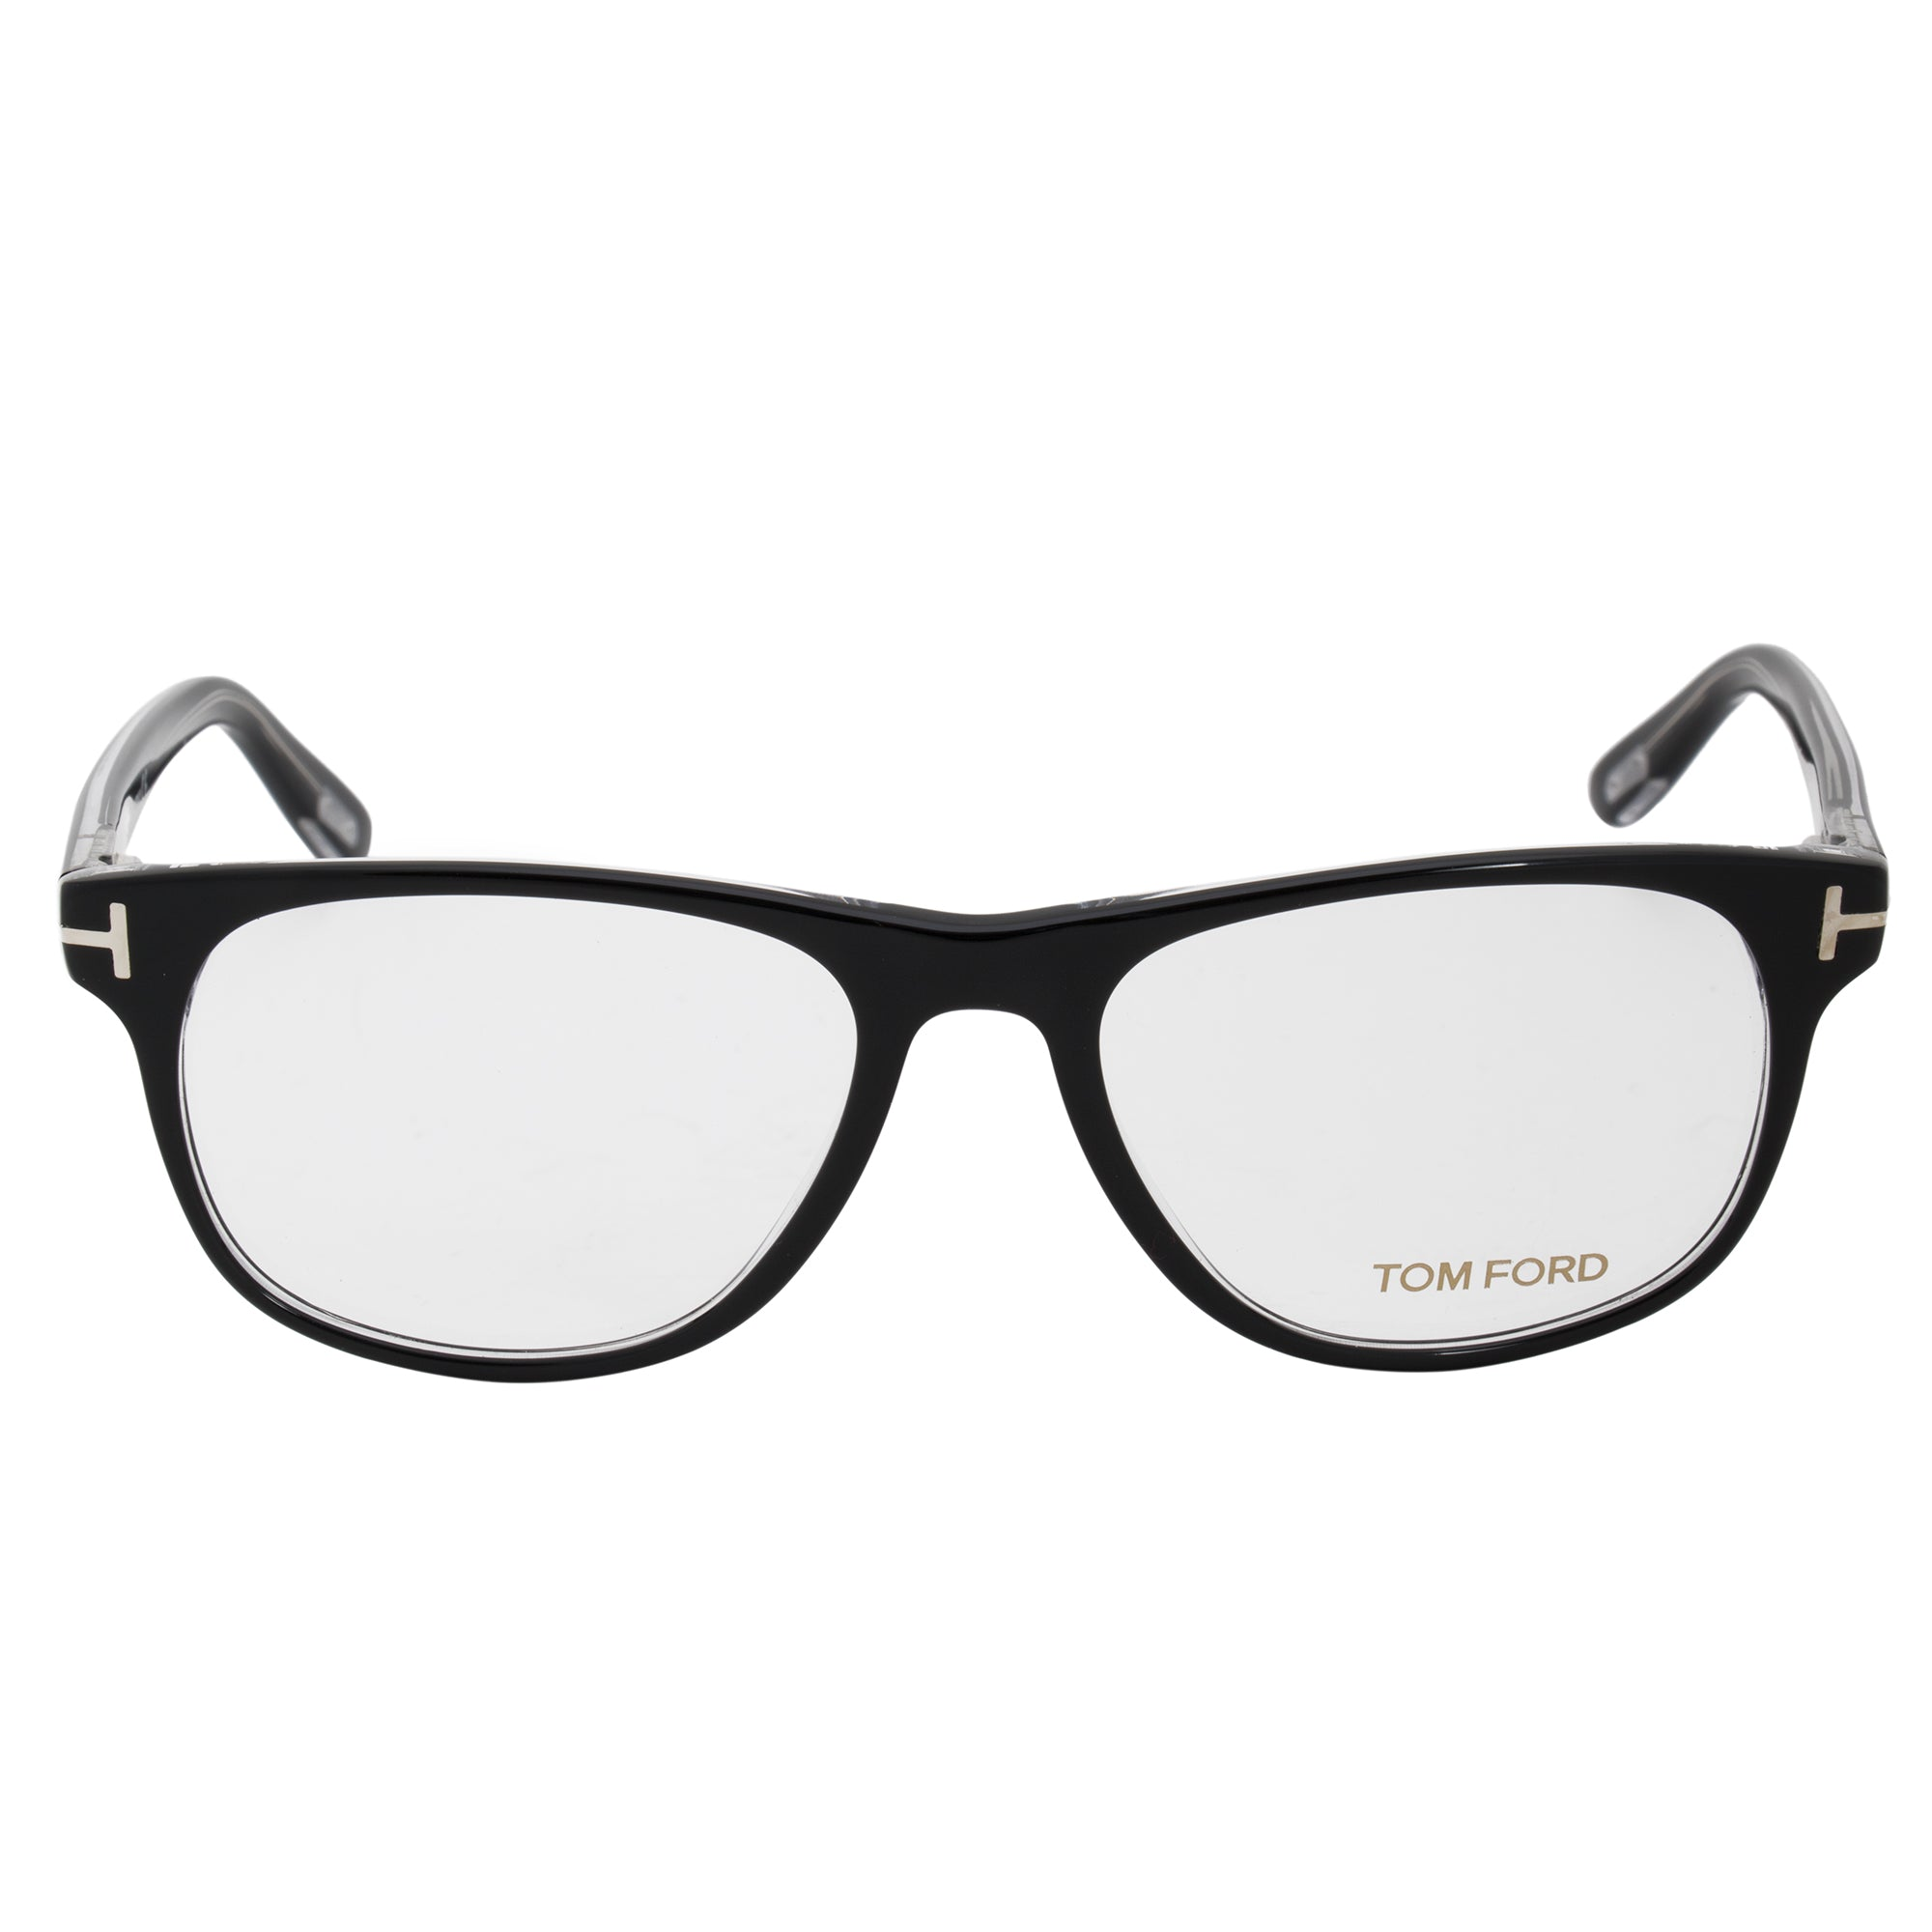 Tom Ford FT5362 5 Square | Black| Eyeglass Frames